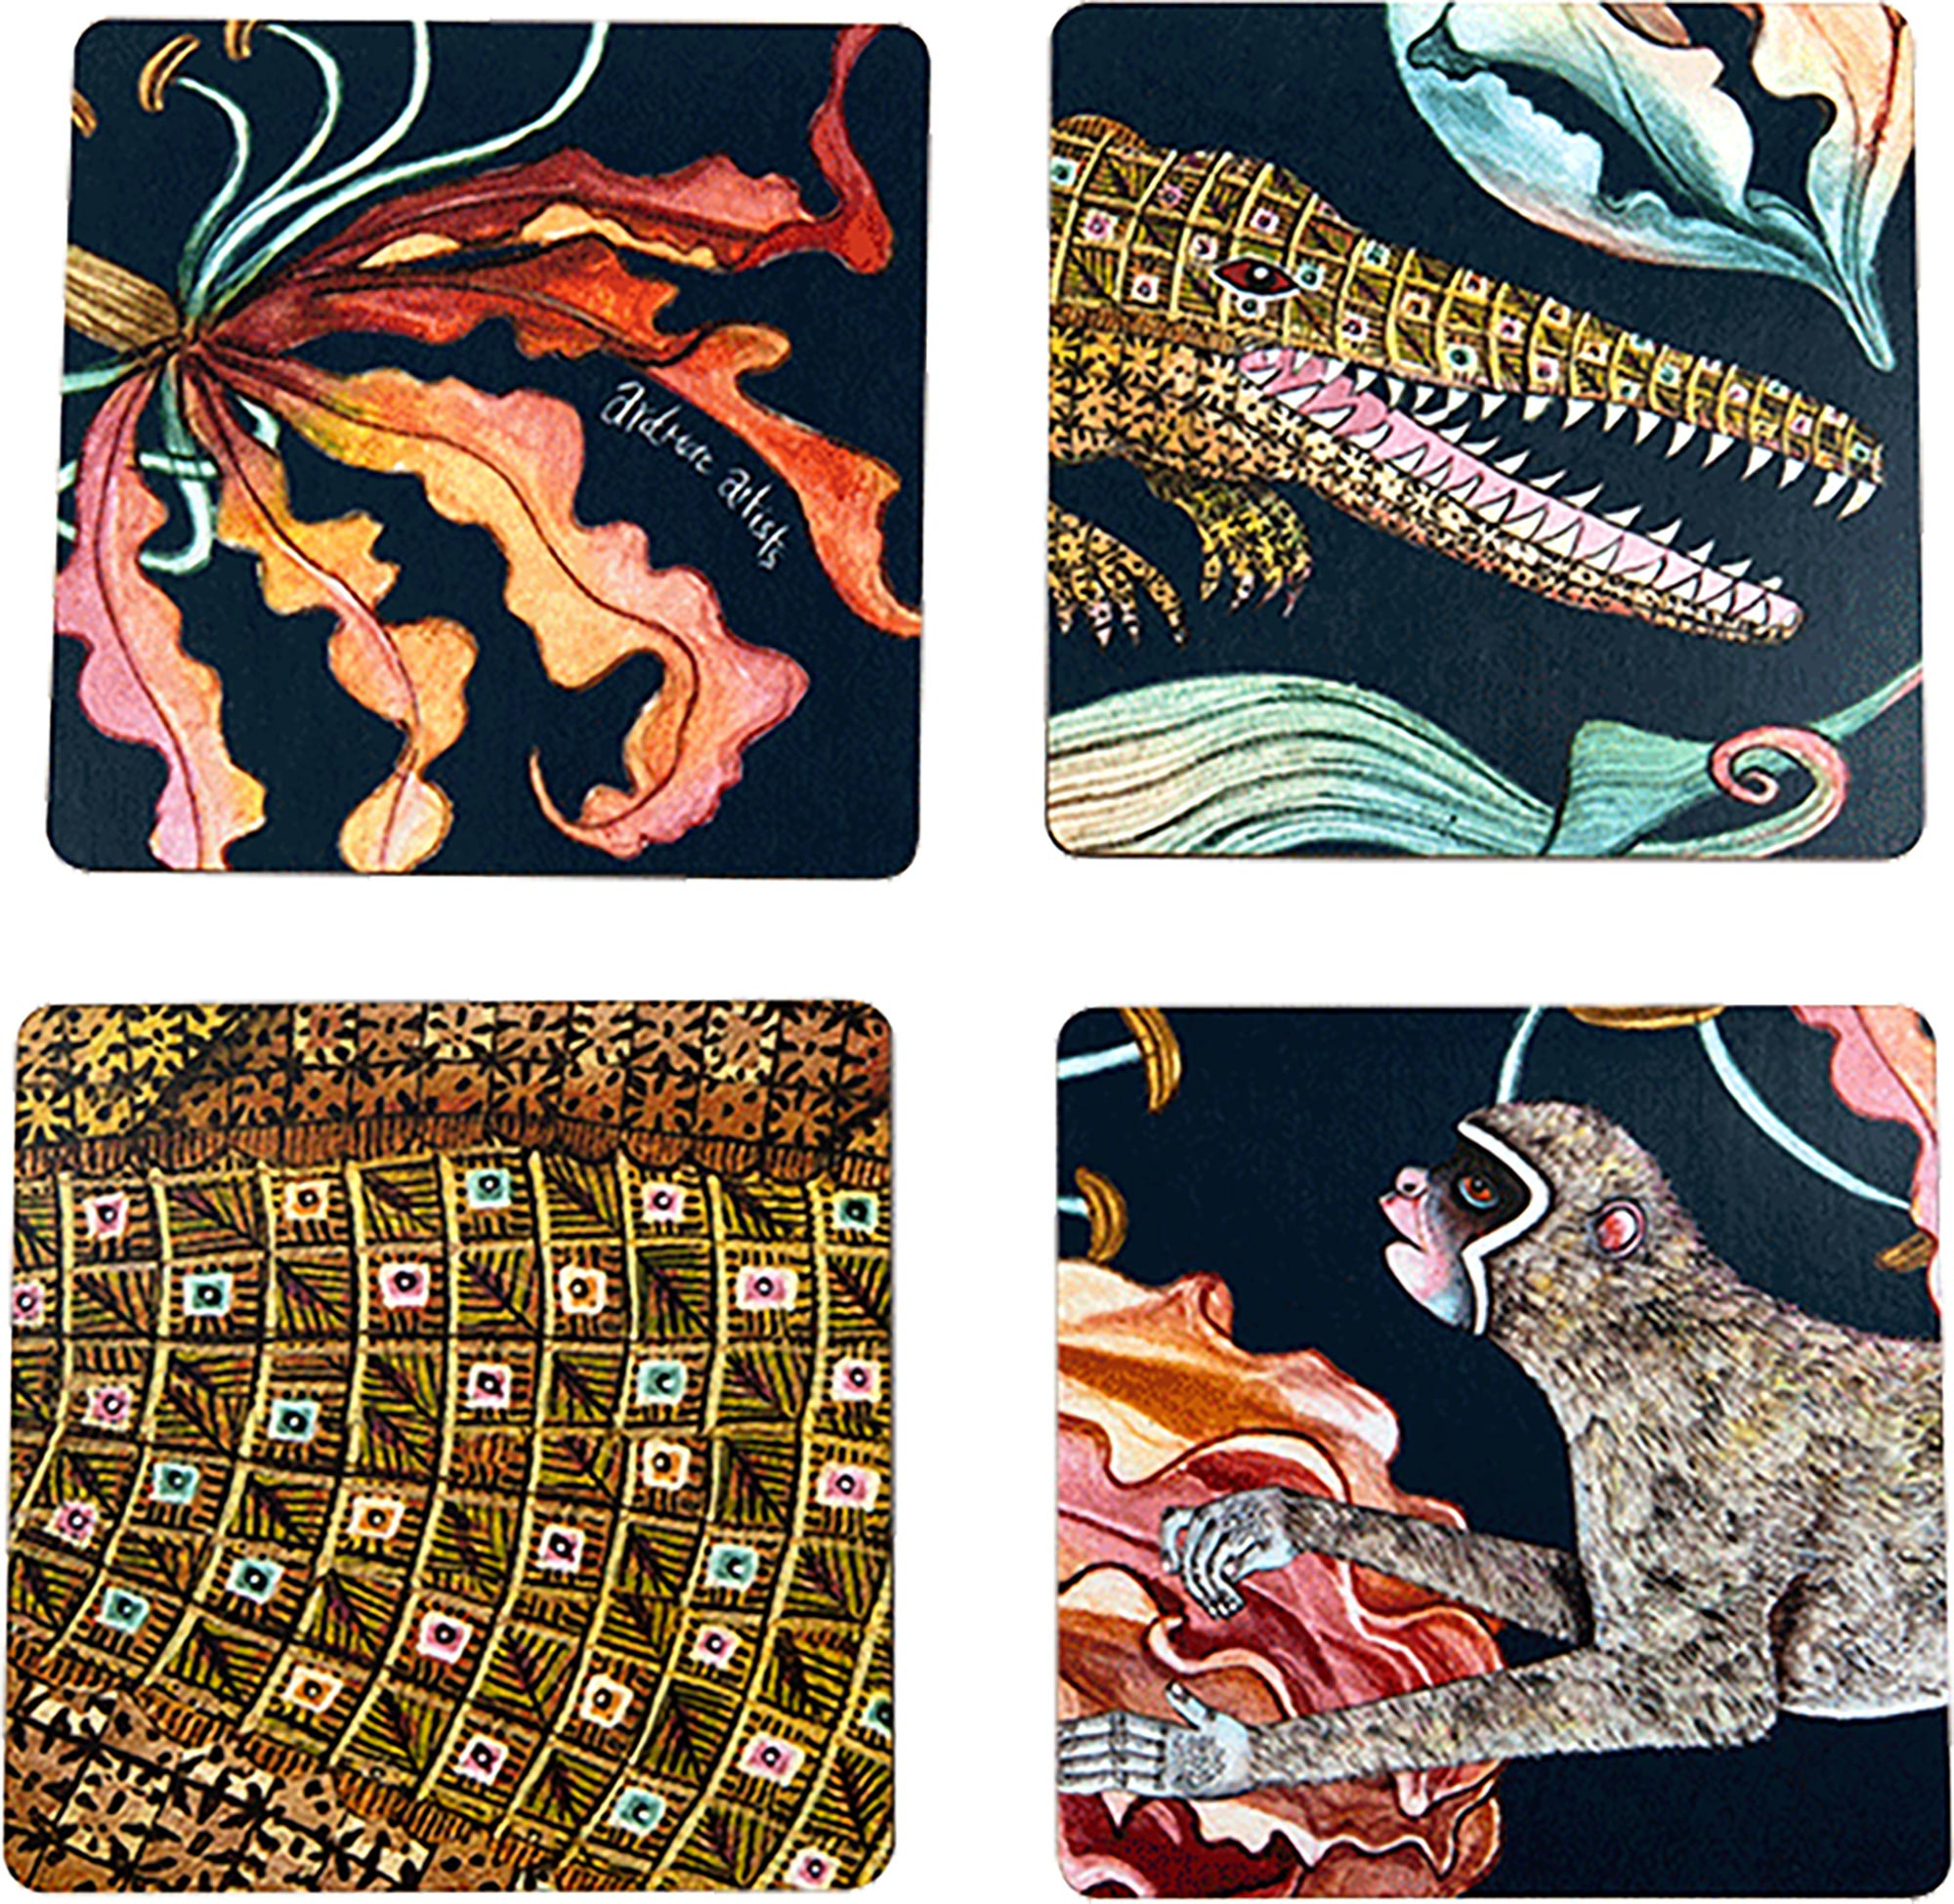 Flame Lily Crocodile Coasters (S/4) - Moonlight